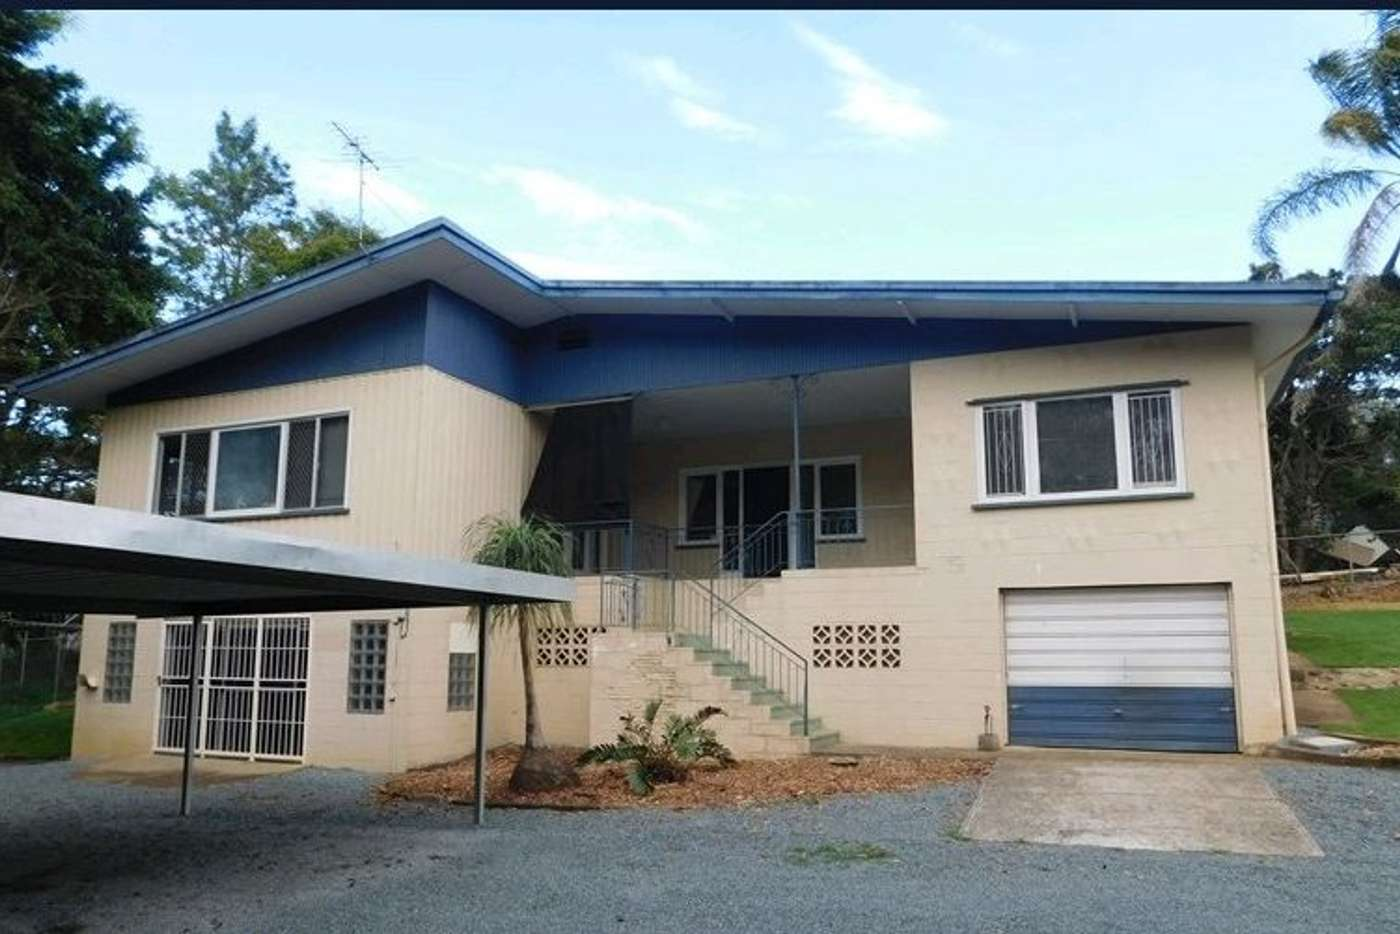 Main view of Homely house listing, 211 Sibley Road, Wynnum West QLD 4178